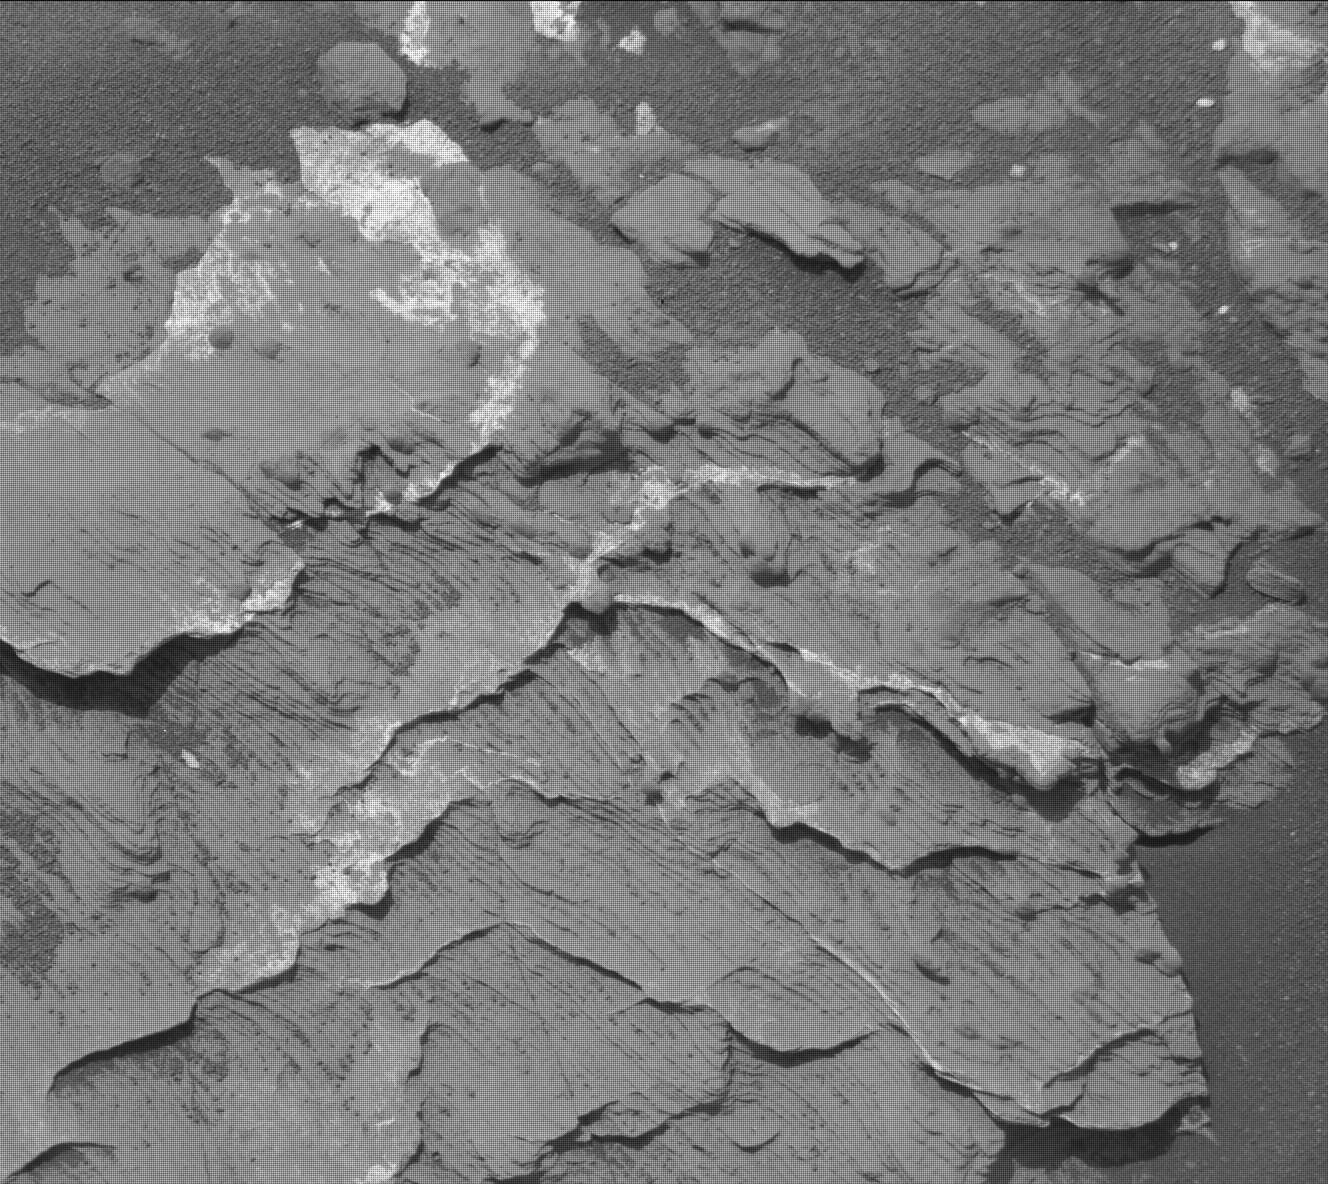 Nasa's Mars rover Curiosity acquired this image using its Mast Camera (Mastcam) on Sol 1680